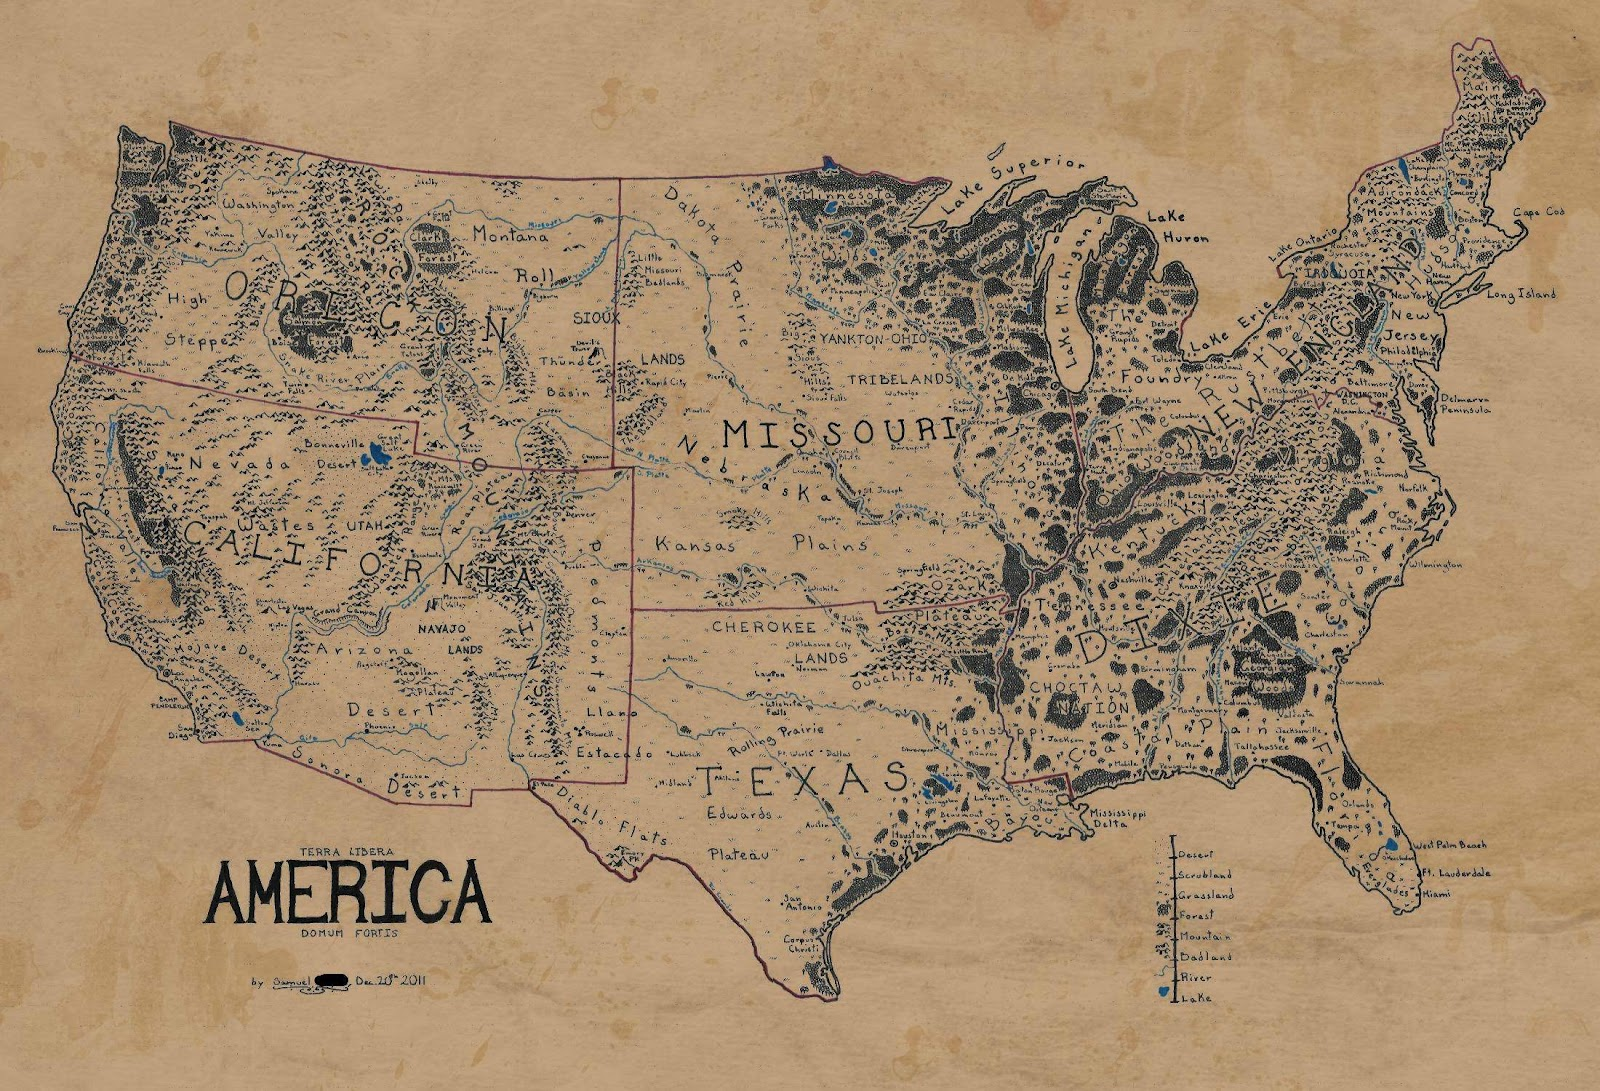 Map of the usa ala lord of the rings images the geek twins and because this is reddit other users quickly stepped up to remove grid lines colorize and antique it heres the final result click to enlarge gumiabroncs Choice Image